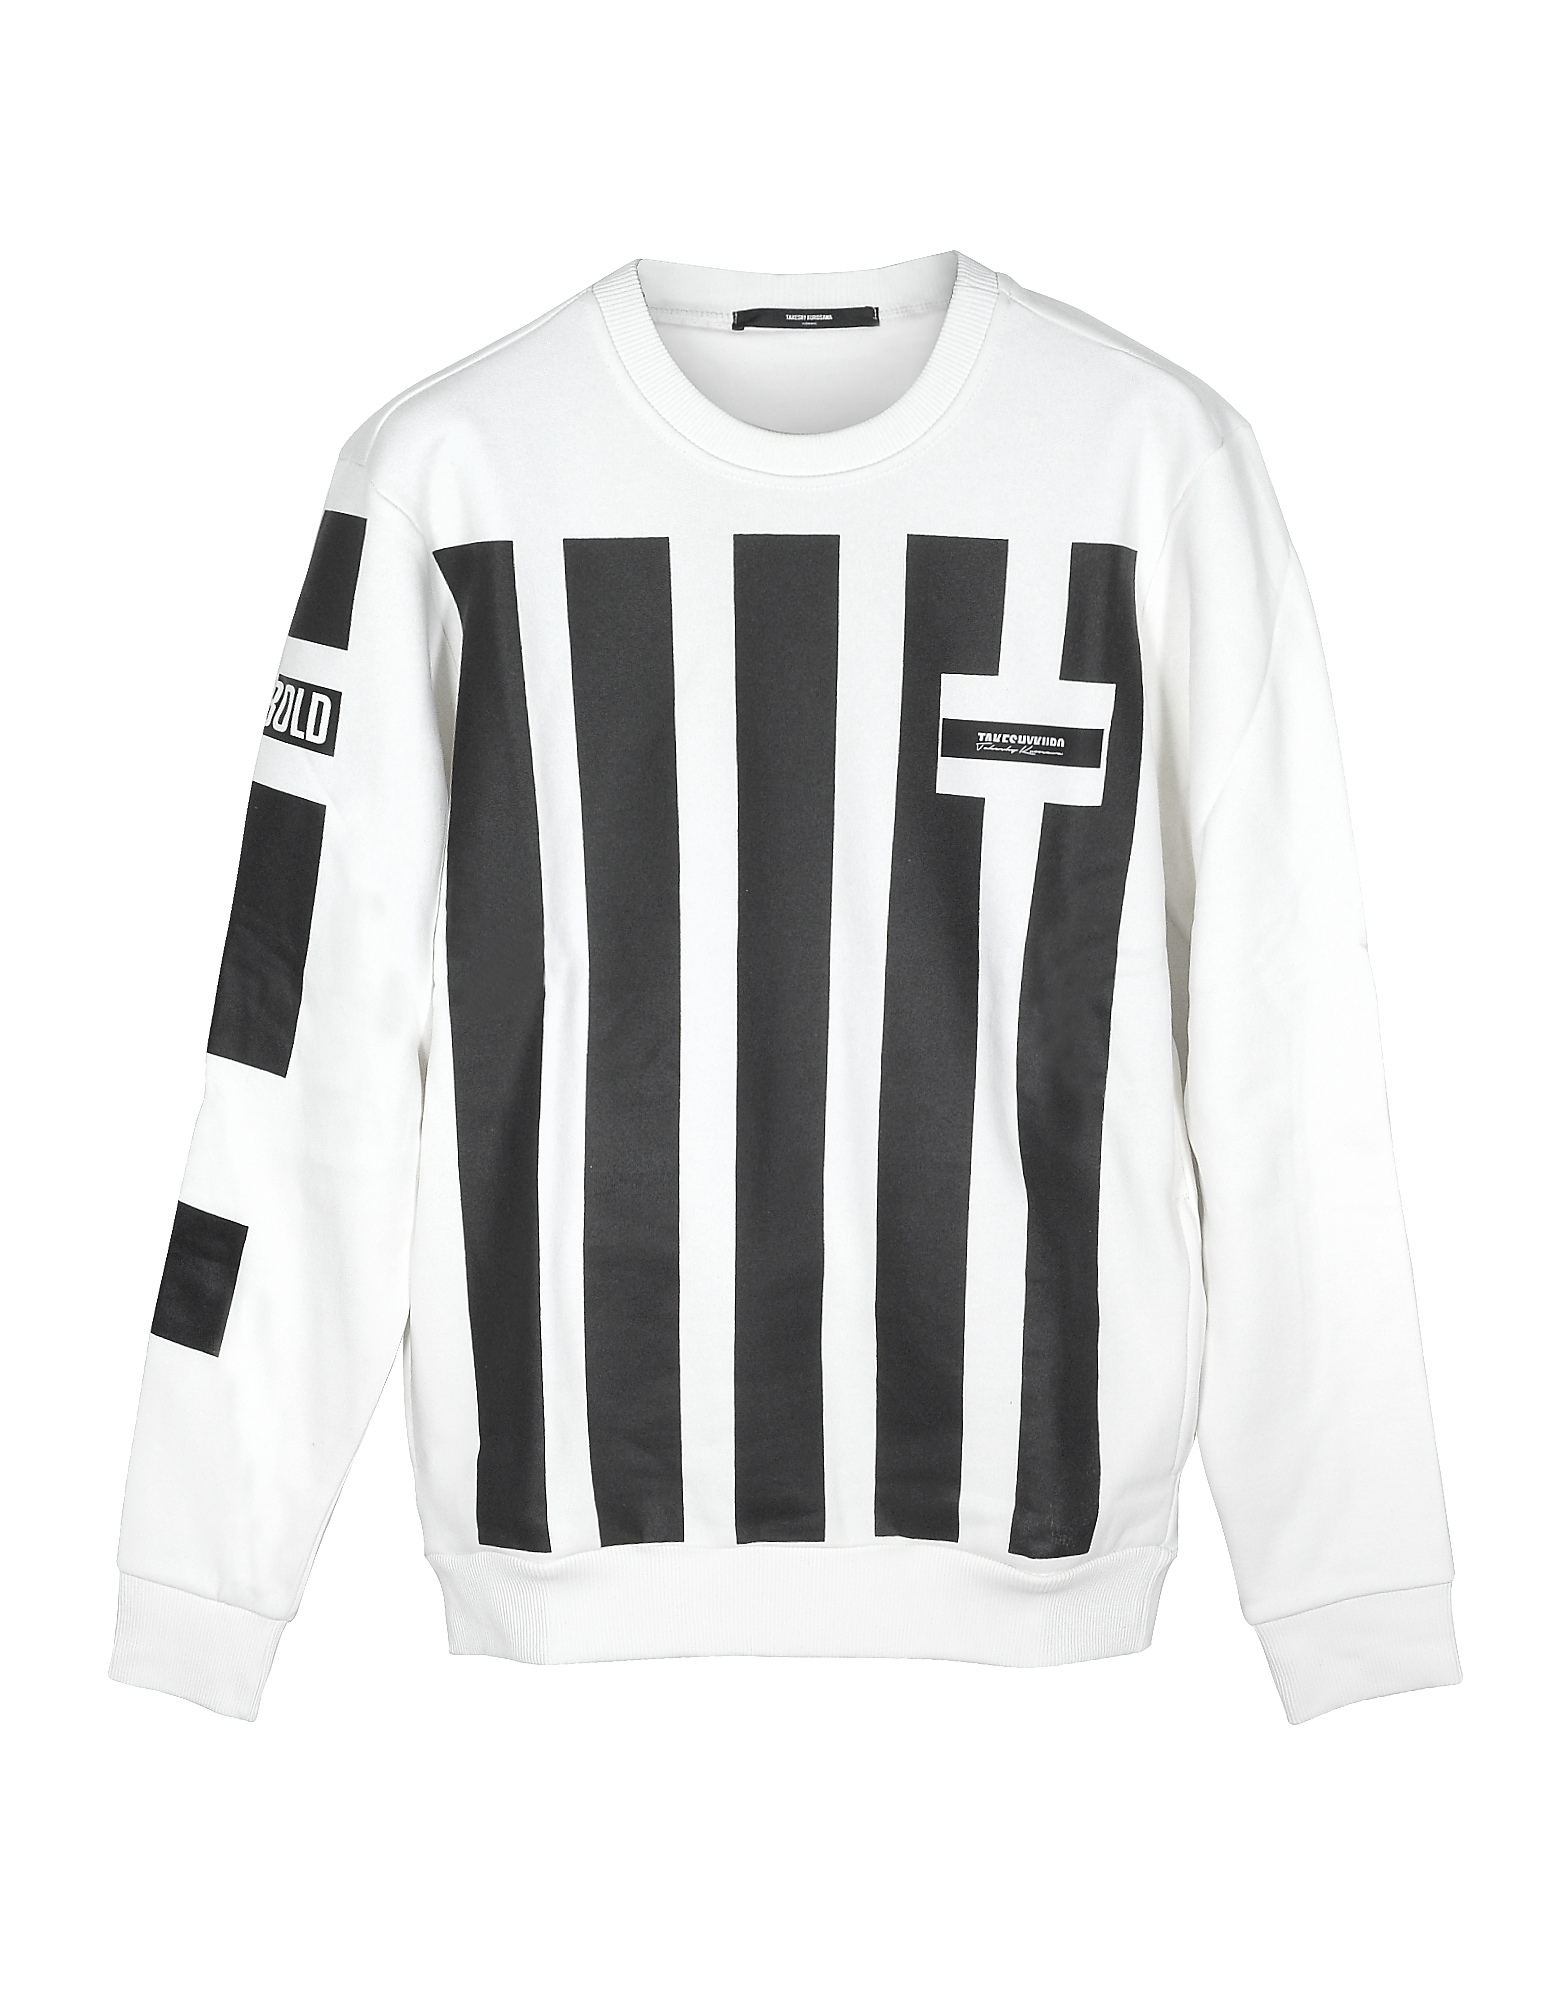 Takeshy Kurosawa Designer Sweatshirts, White and Black Striped Cotton Men's Sweater